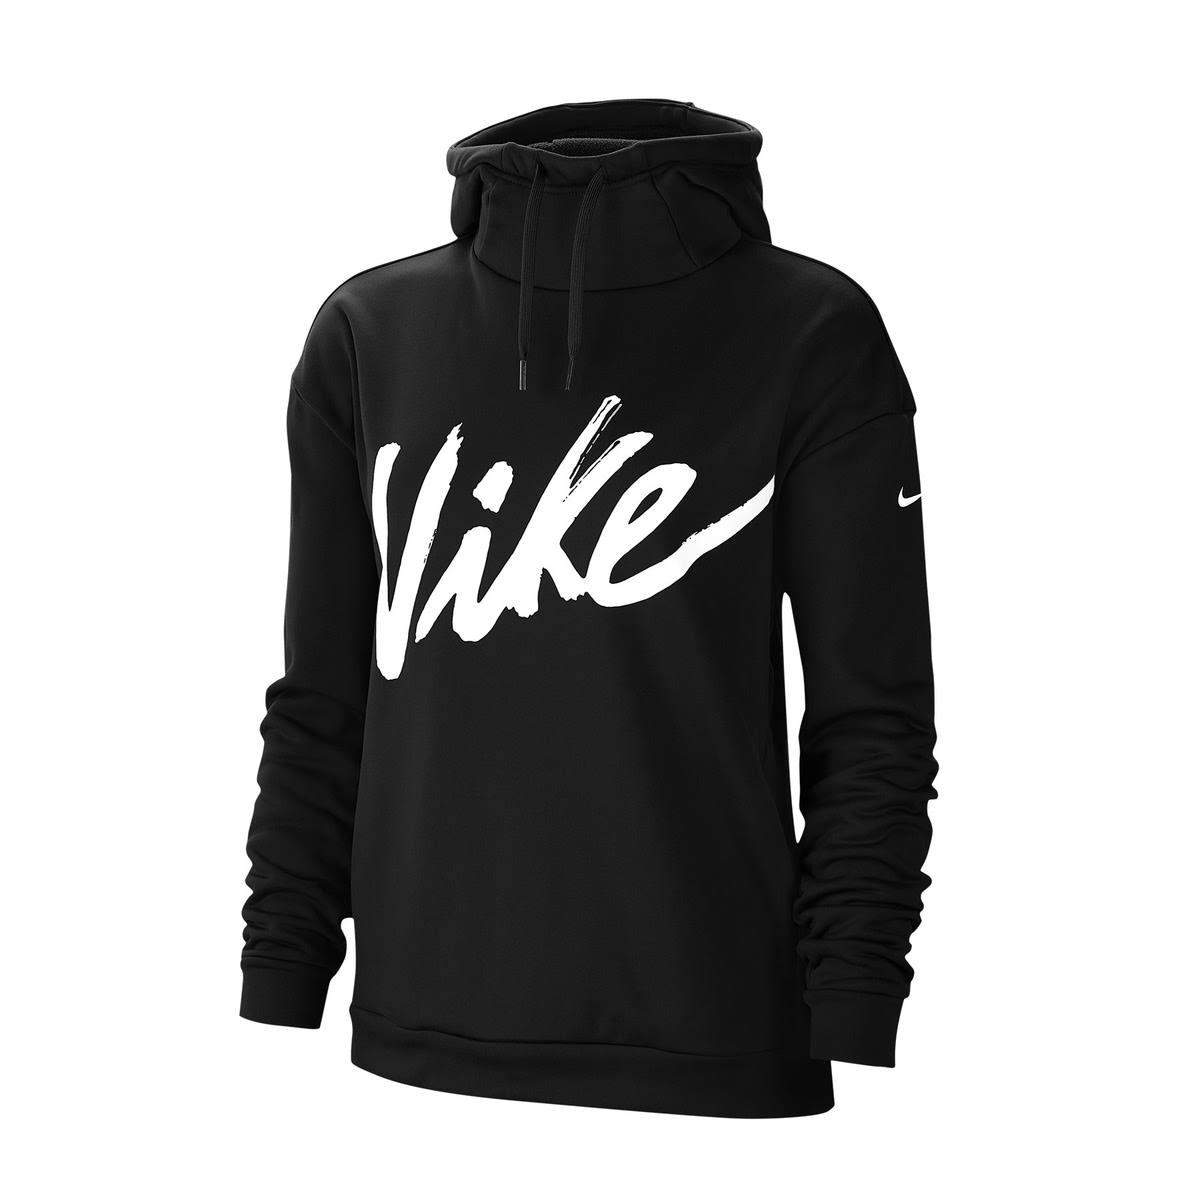 Nike Womens Therma Fleece Hoodie Black/White Size Women's Medium